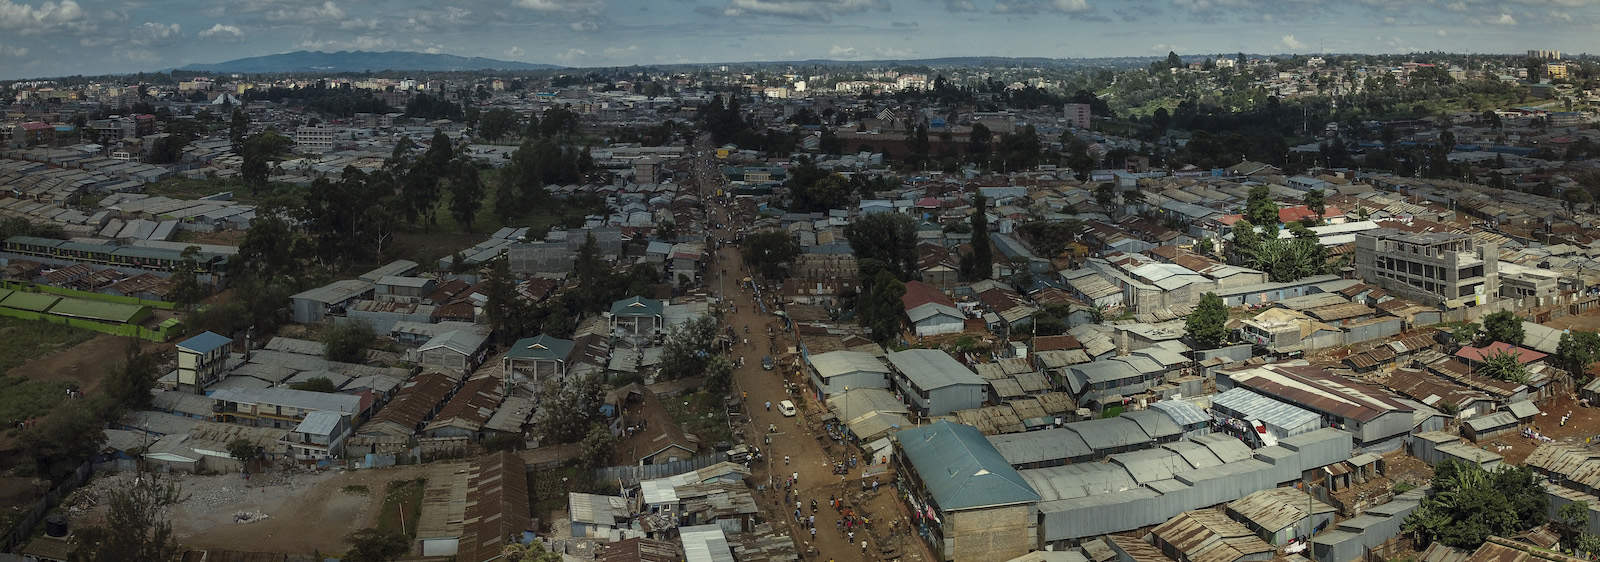 An overhead view of Kibera, a slum in Nairobi, Kenya